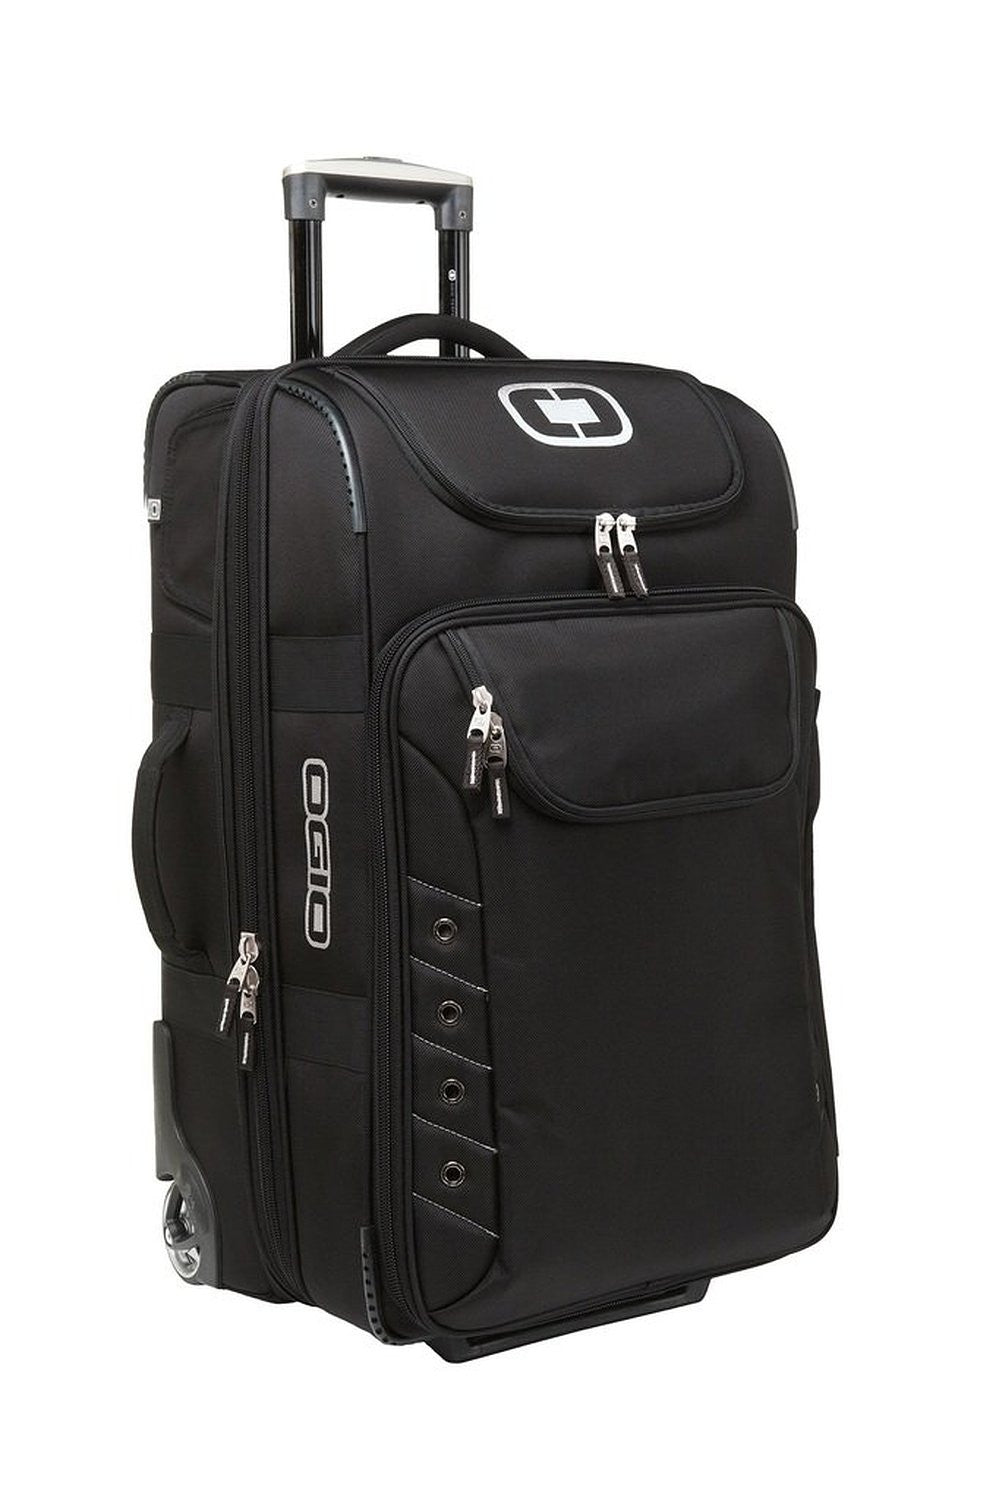 OGIO Canberra 26 Travel Bag - Patrick's Signs - 2